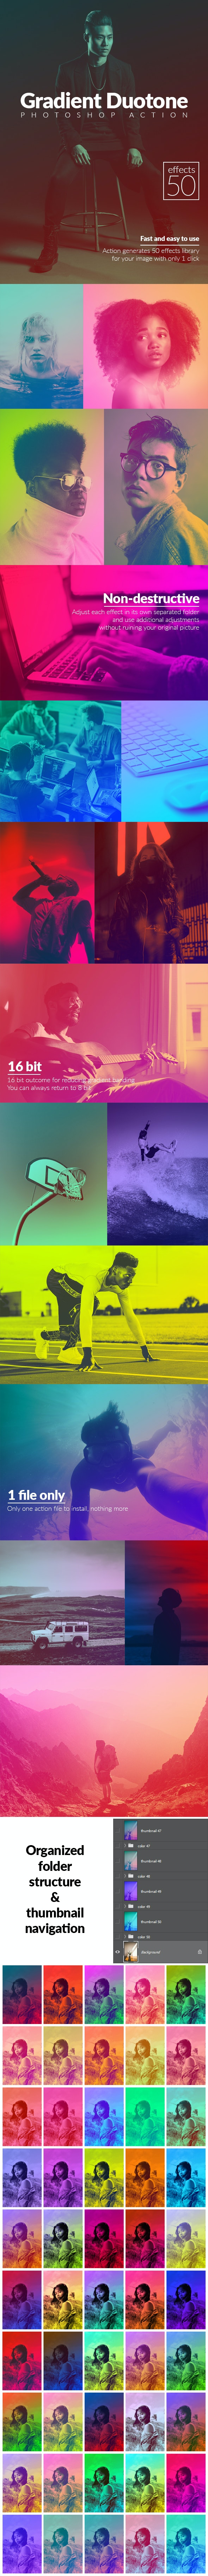 50 Gradient Duotone Effects Photoshop Action - Photo Effects Actions